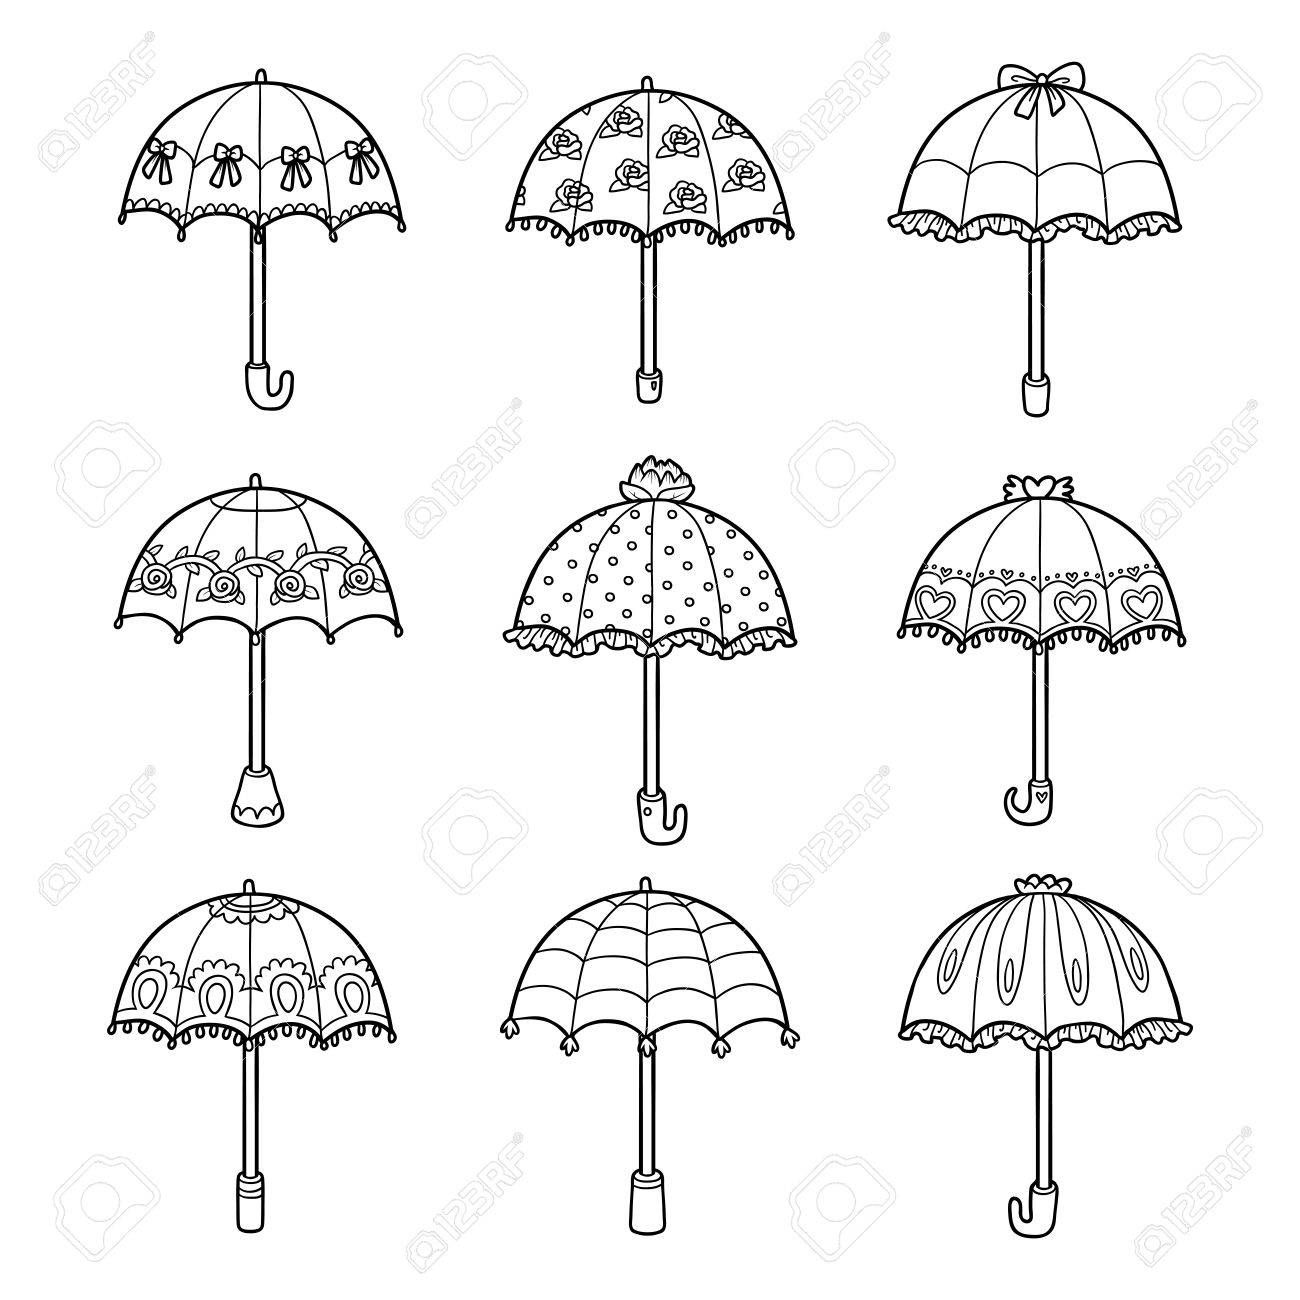 Vector vector black and white set of umbrellas